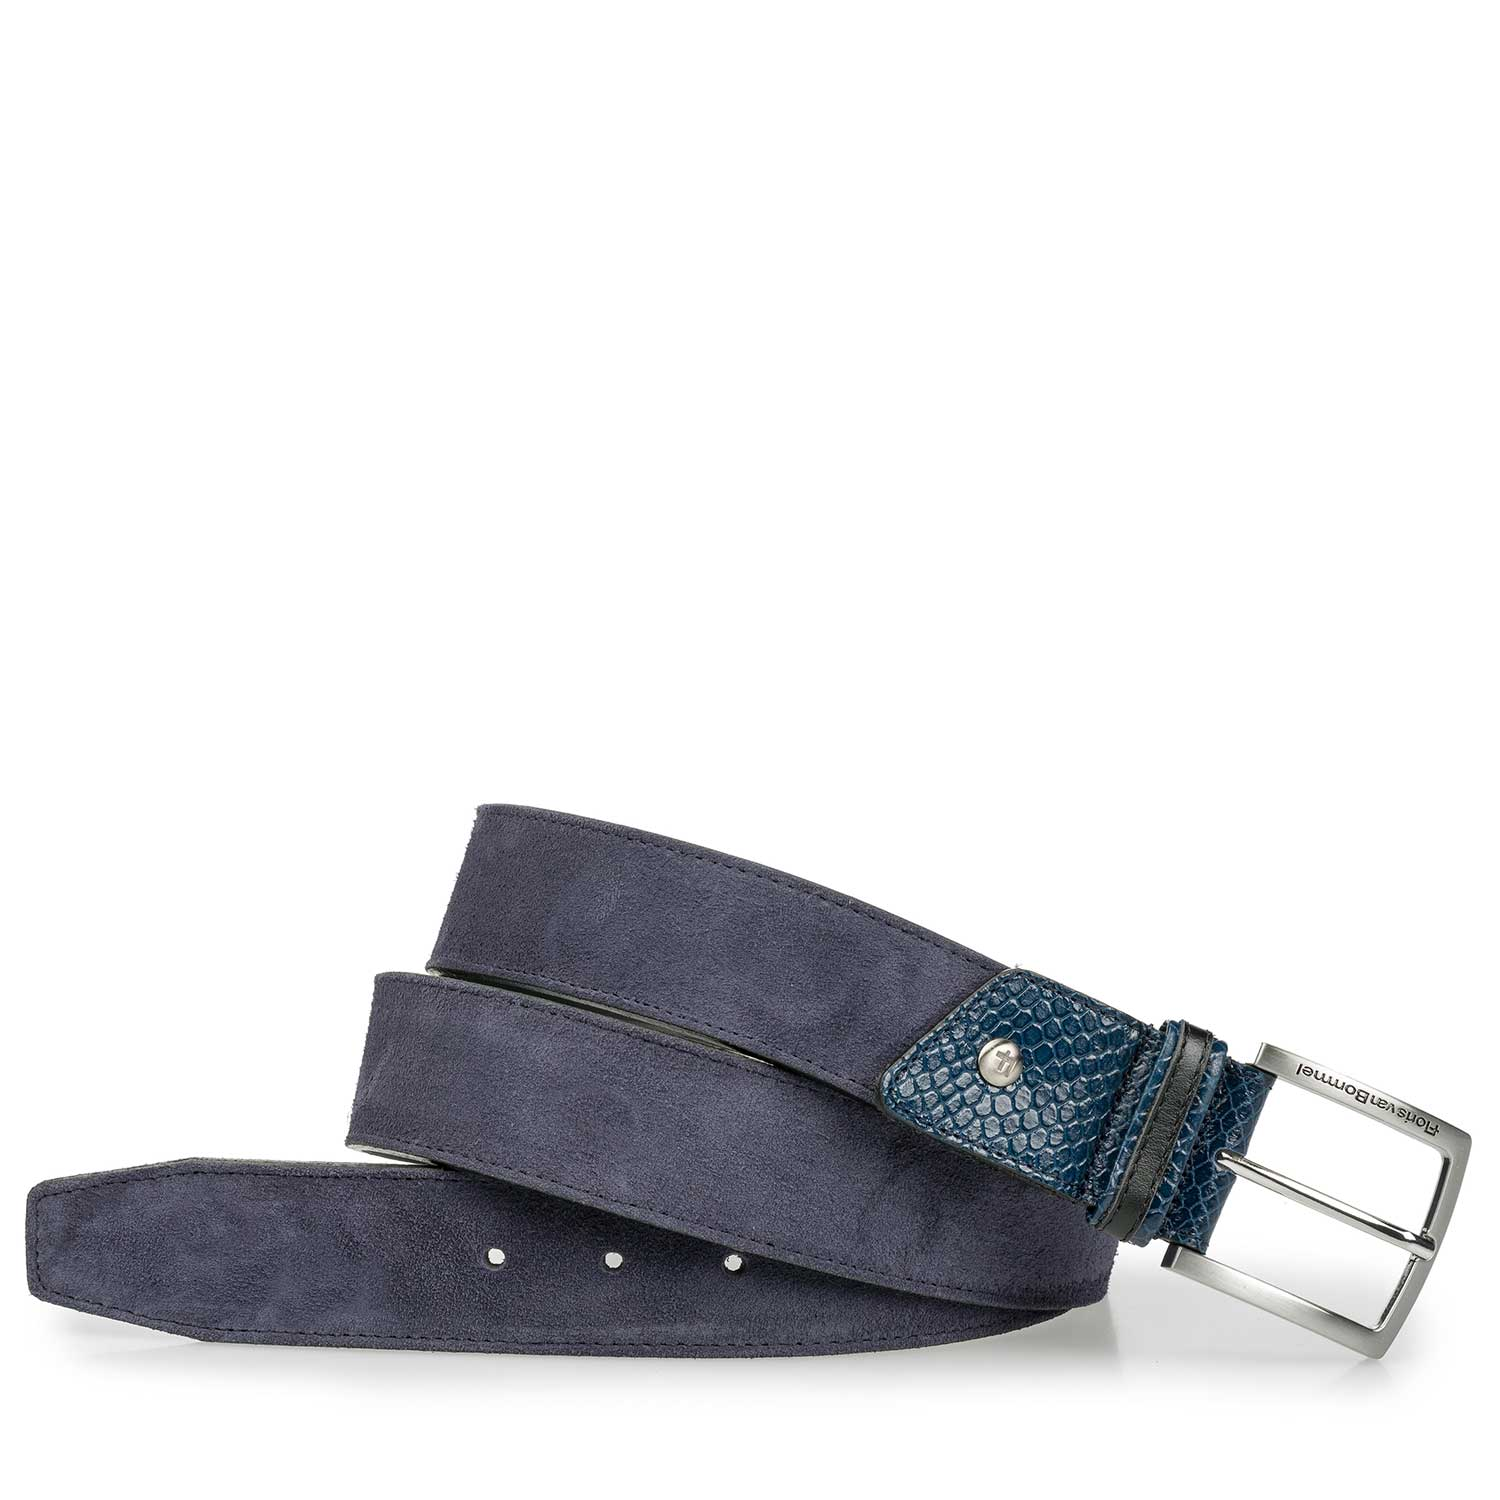 75193/06 - Nappa leather belt with blue suede leather accents